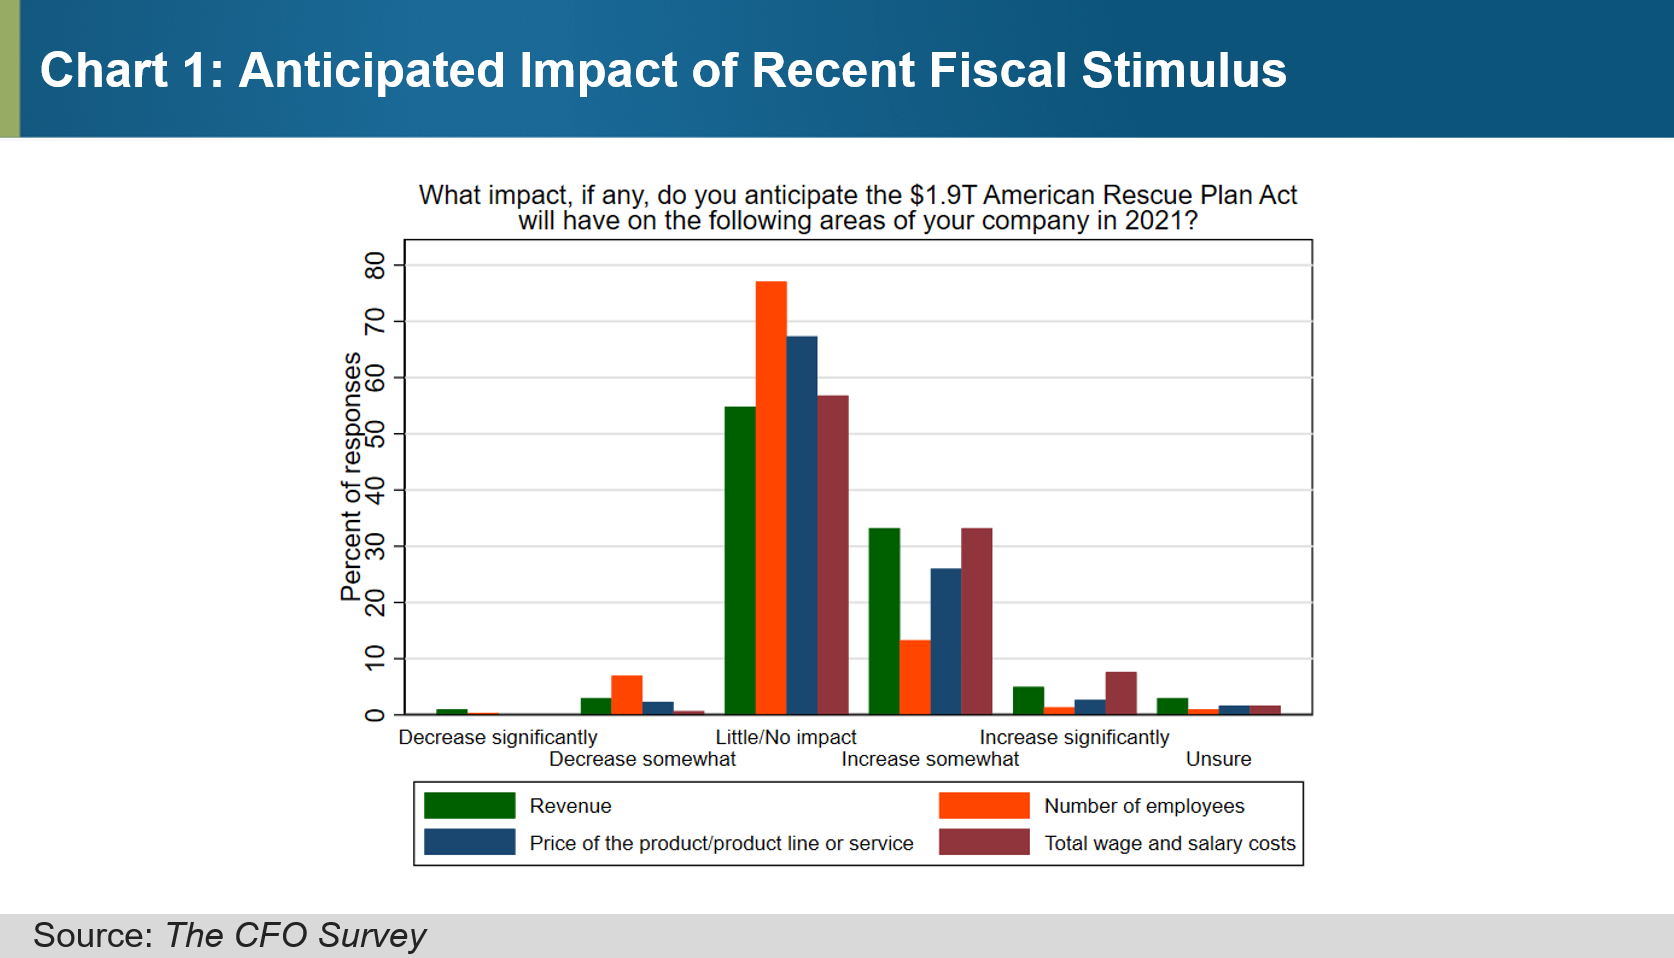 Chart 1 of 1: Anticipated Impact of Recent Fiscal Stimulus